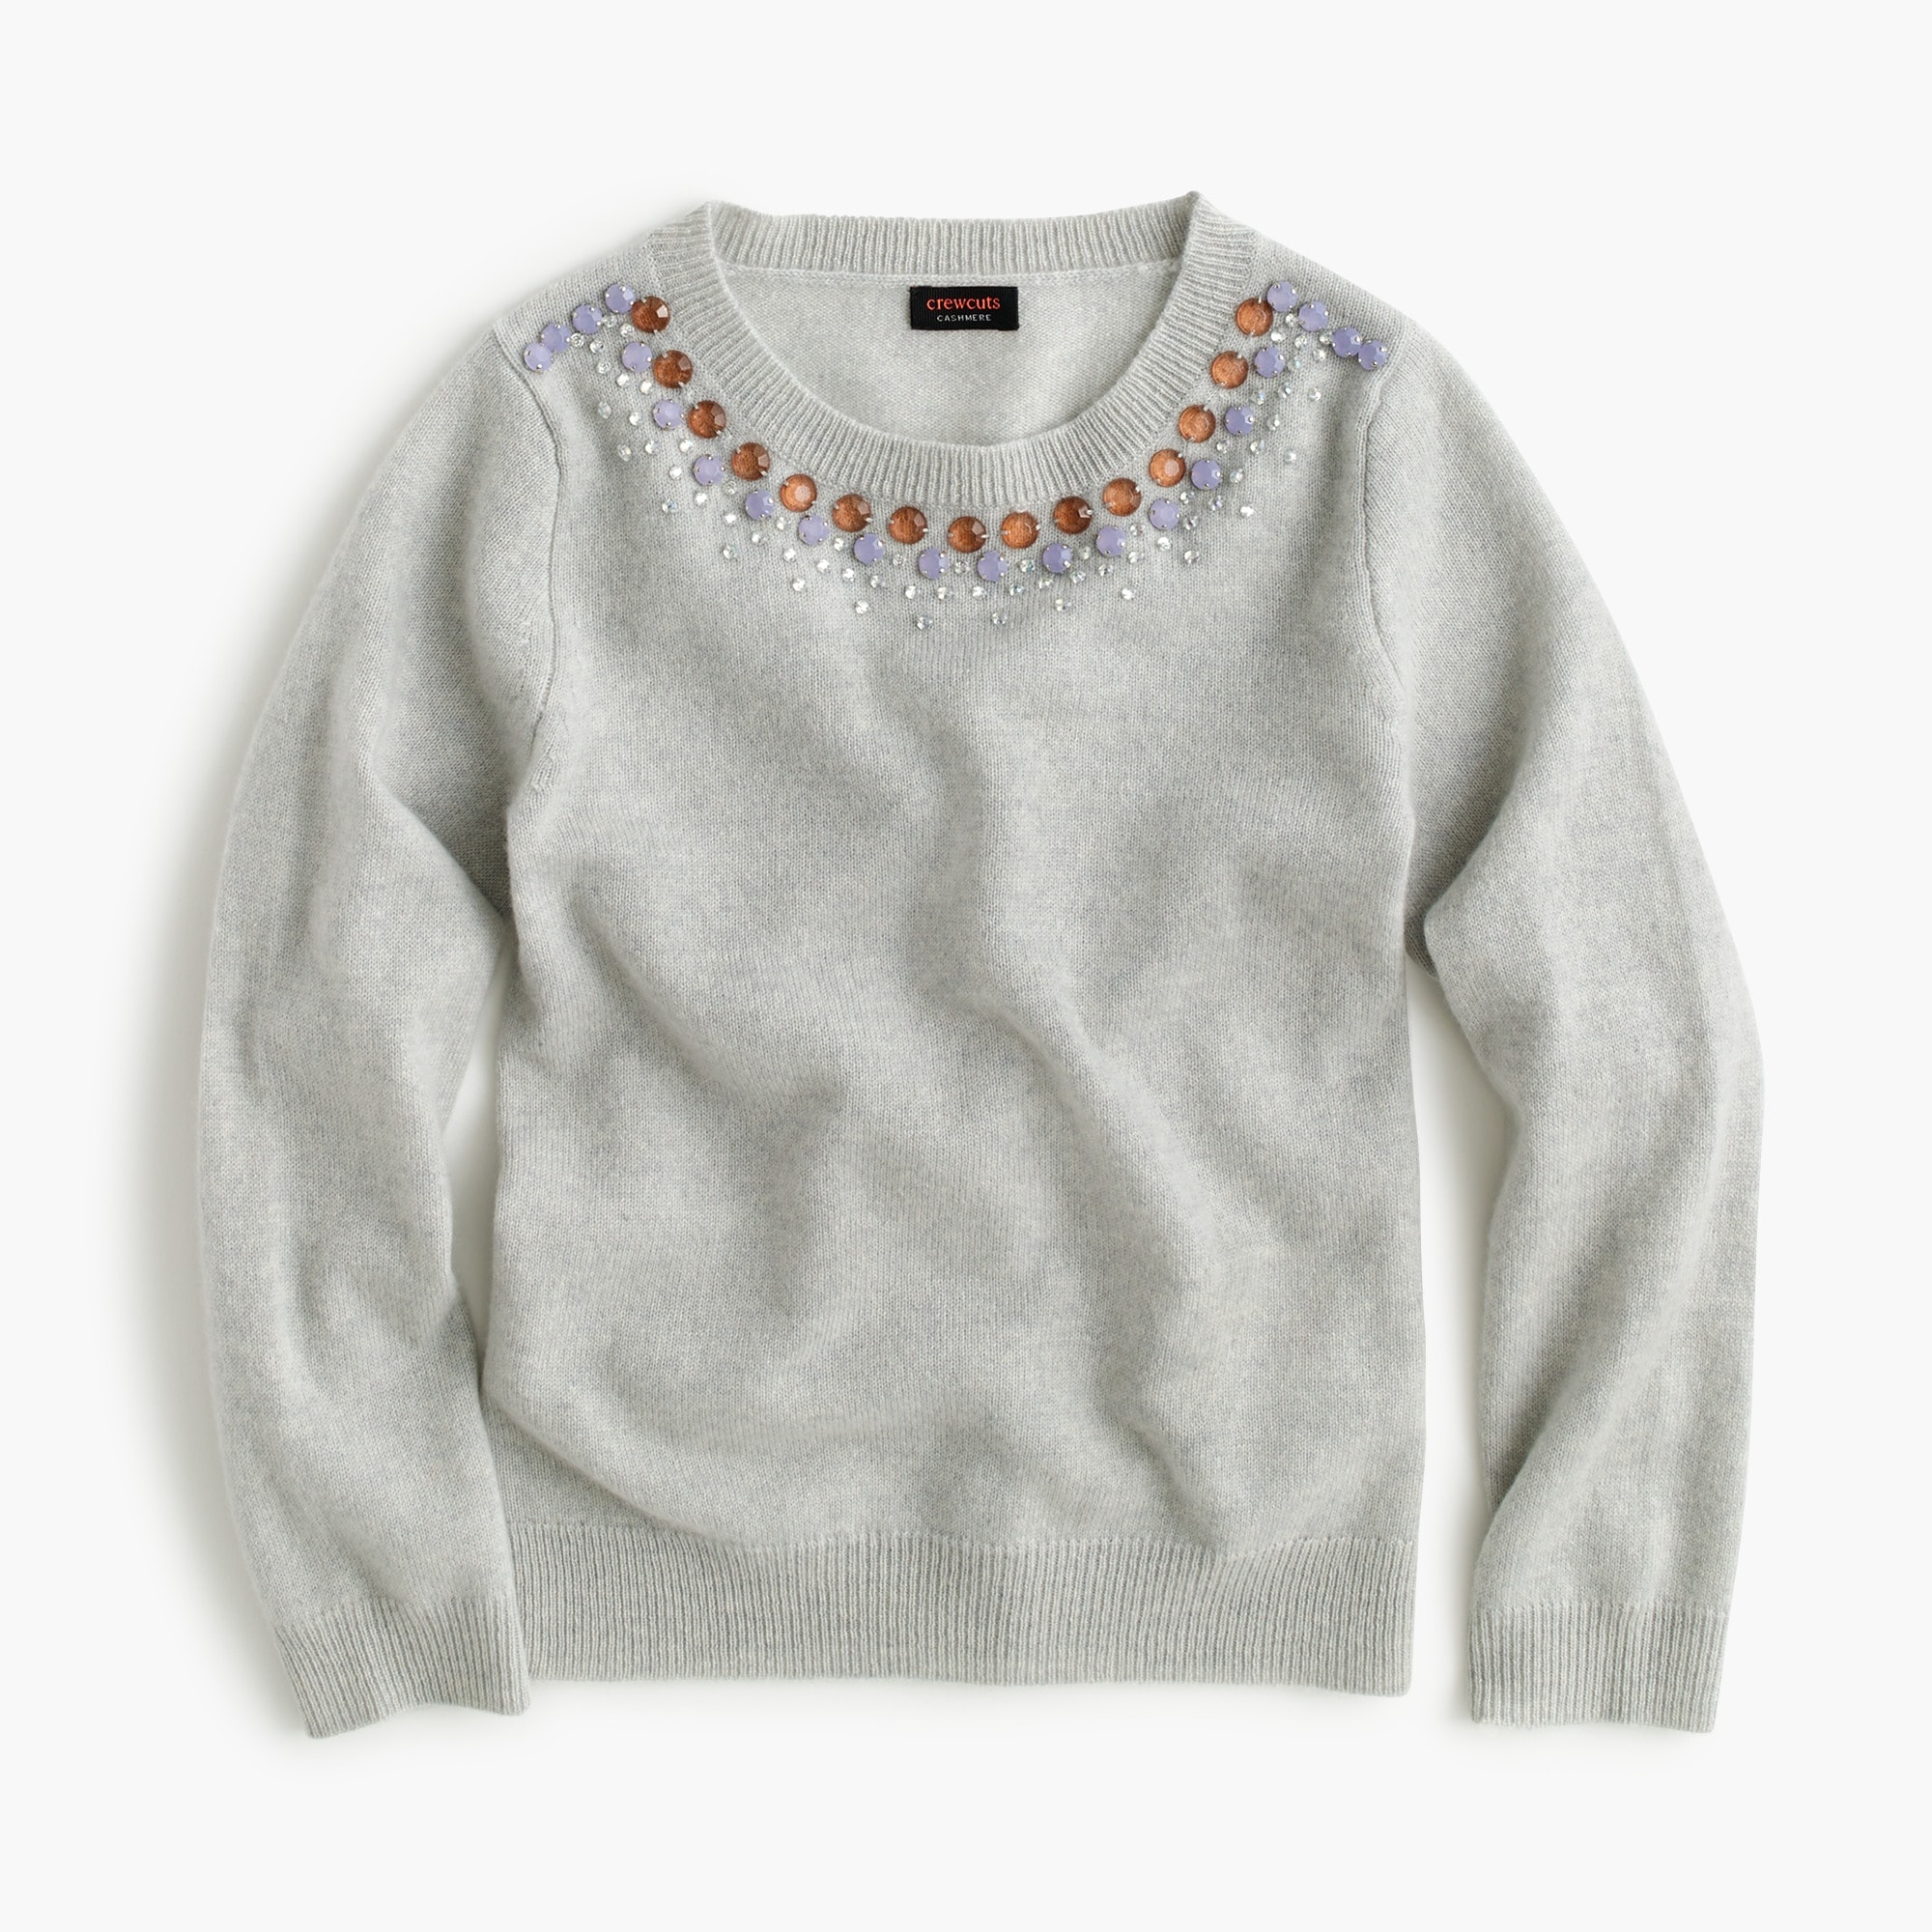 Girls' cashmere necklace sweater